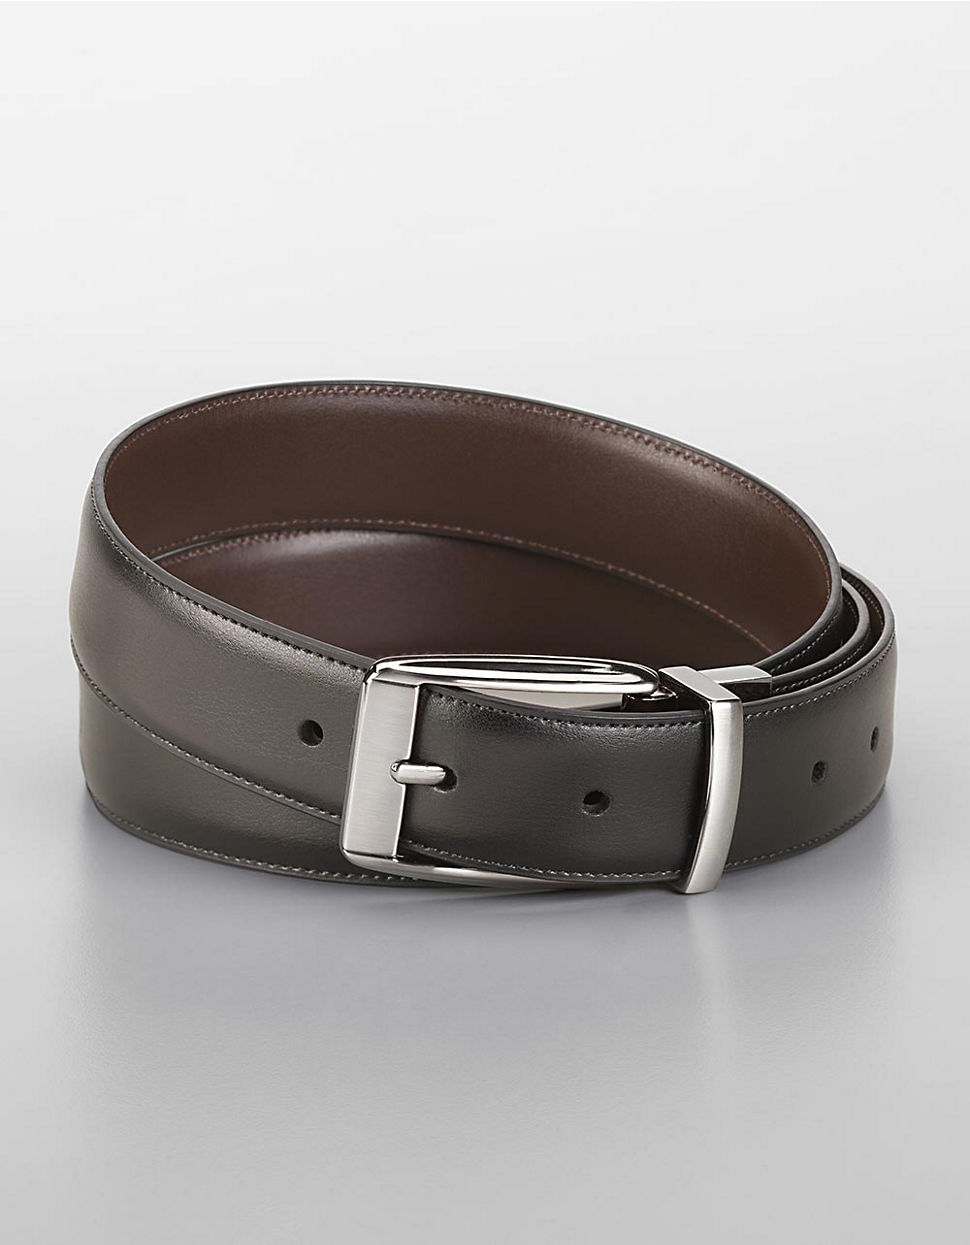 perry ellis feathered edge leather dress belt in black for